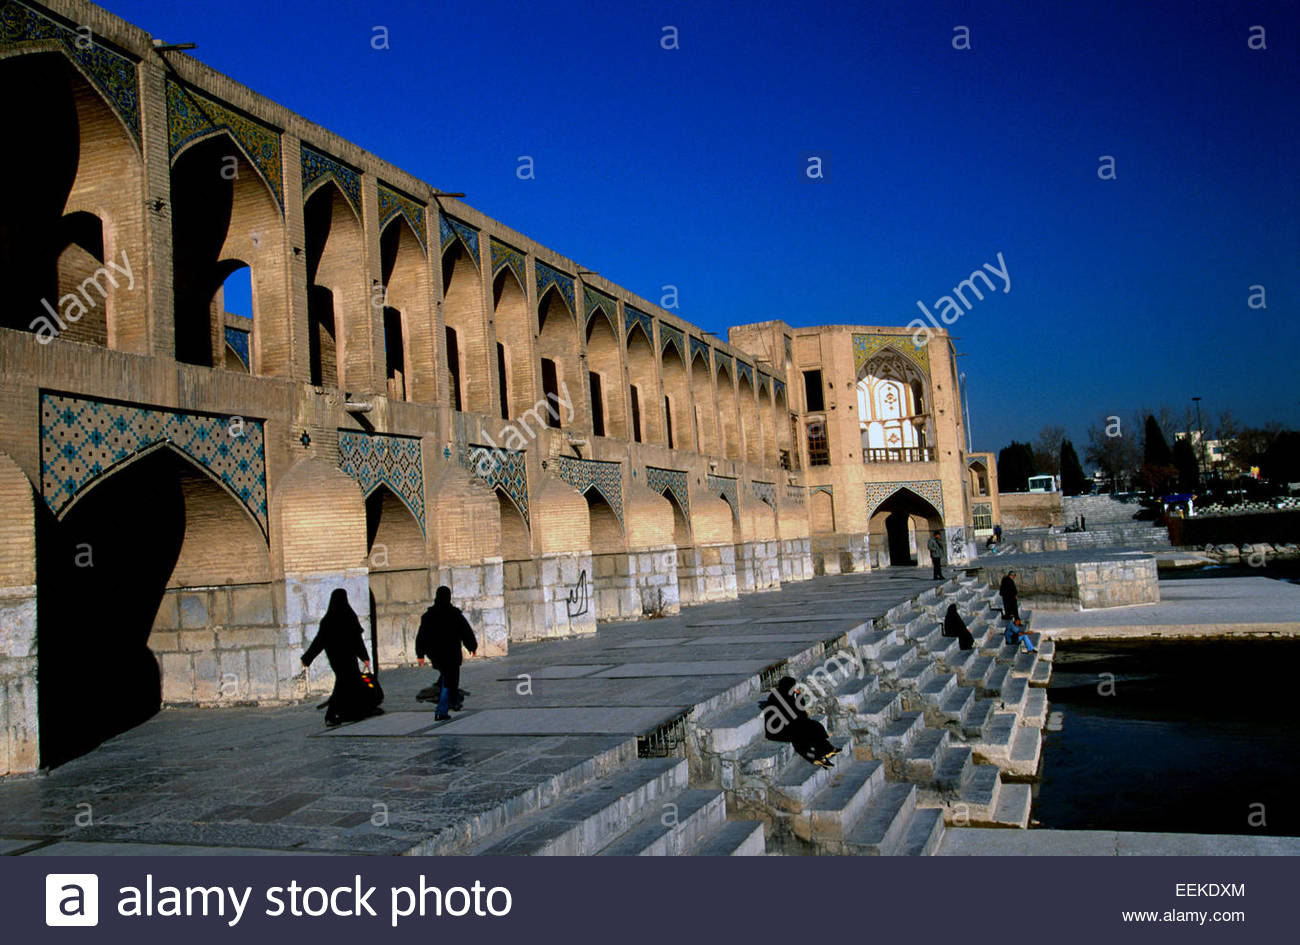 Iran, Ispahan, Khadju Pol, the Khaju bridge - Stock Image